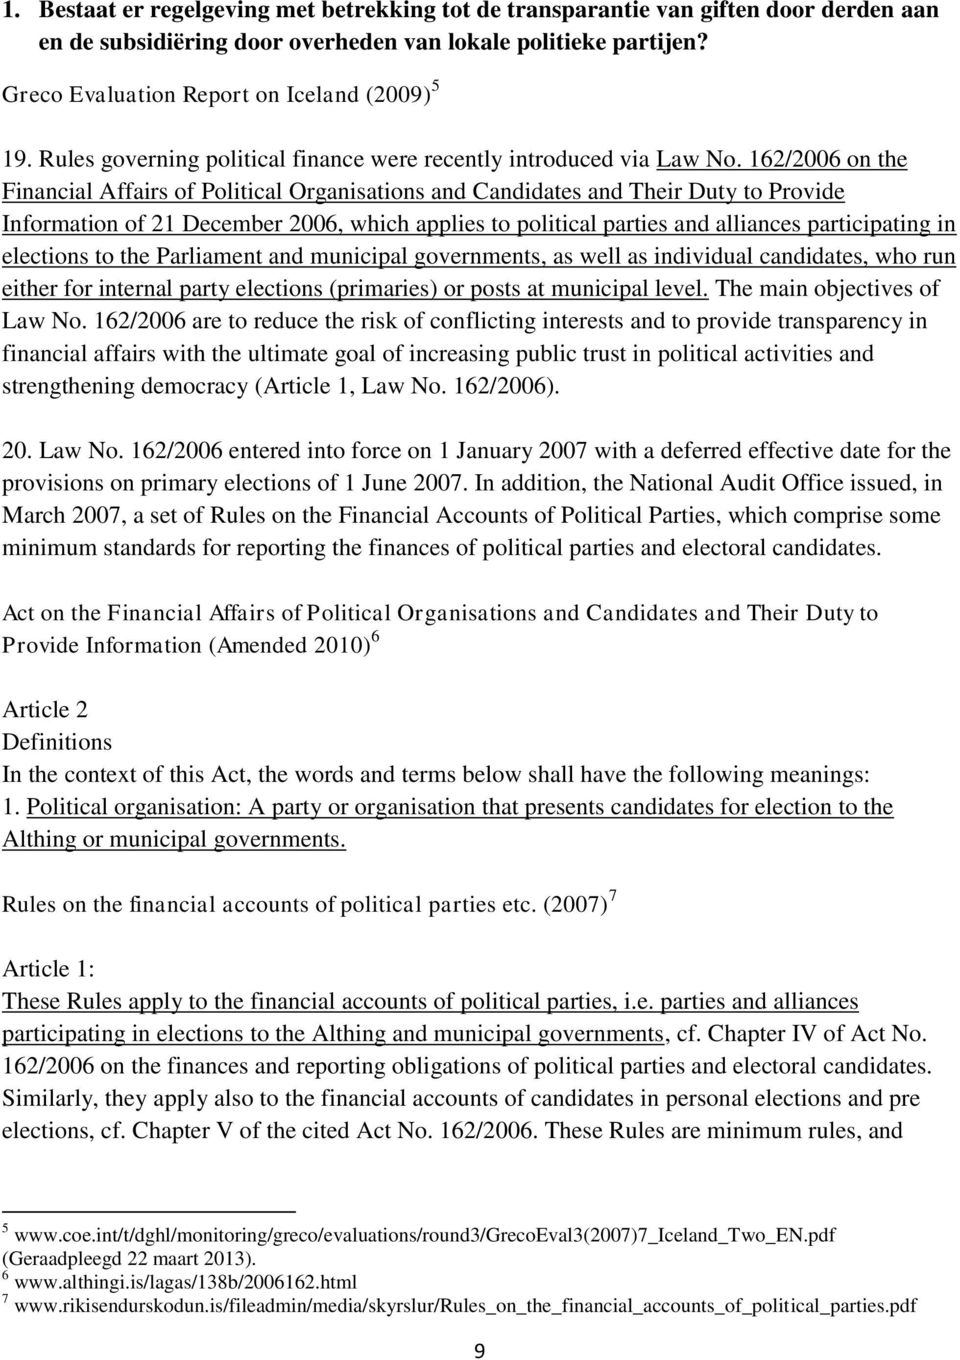 162/2006 on the Financial Affairs of Political Organisations and Candidates and Their Duty to Provide Information of 21 December 2006, which applies to political parties and alliances participating